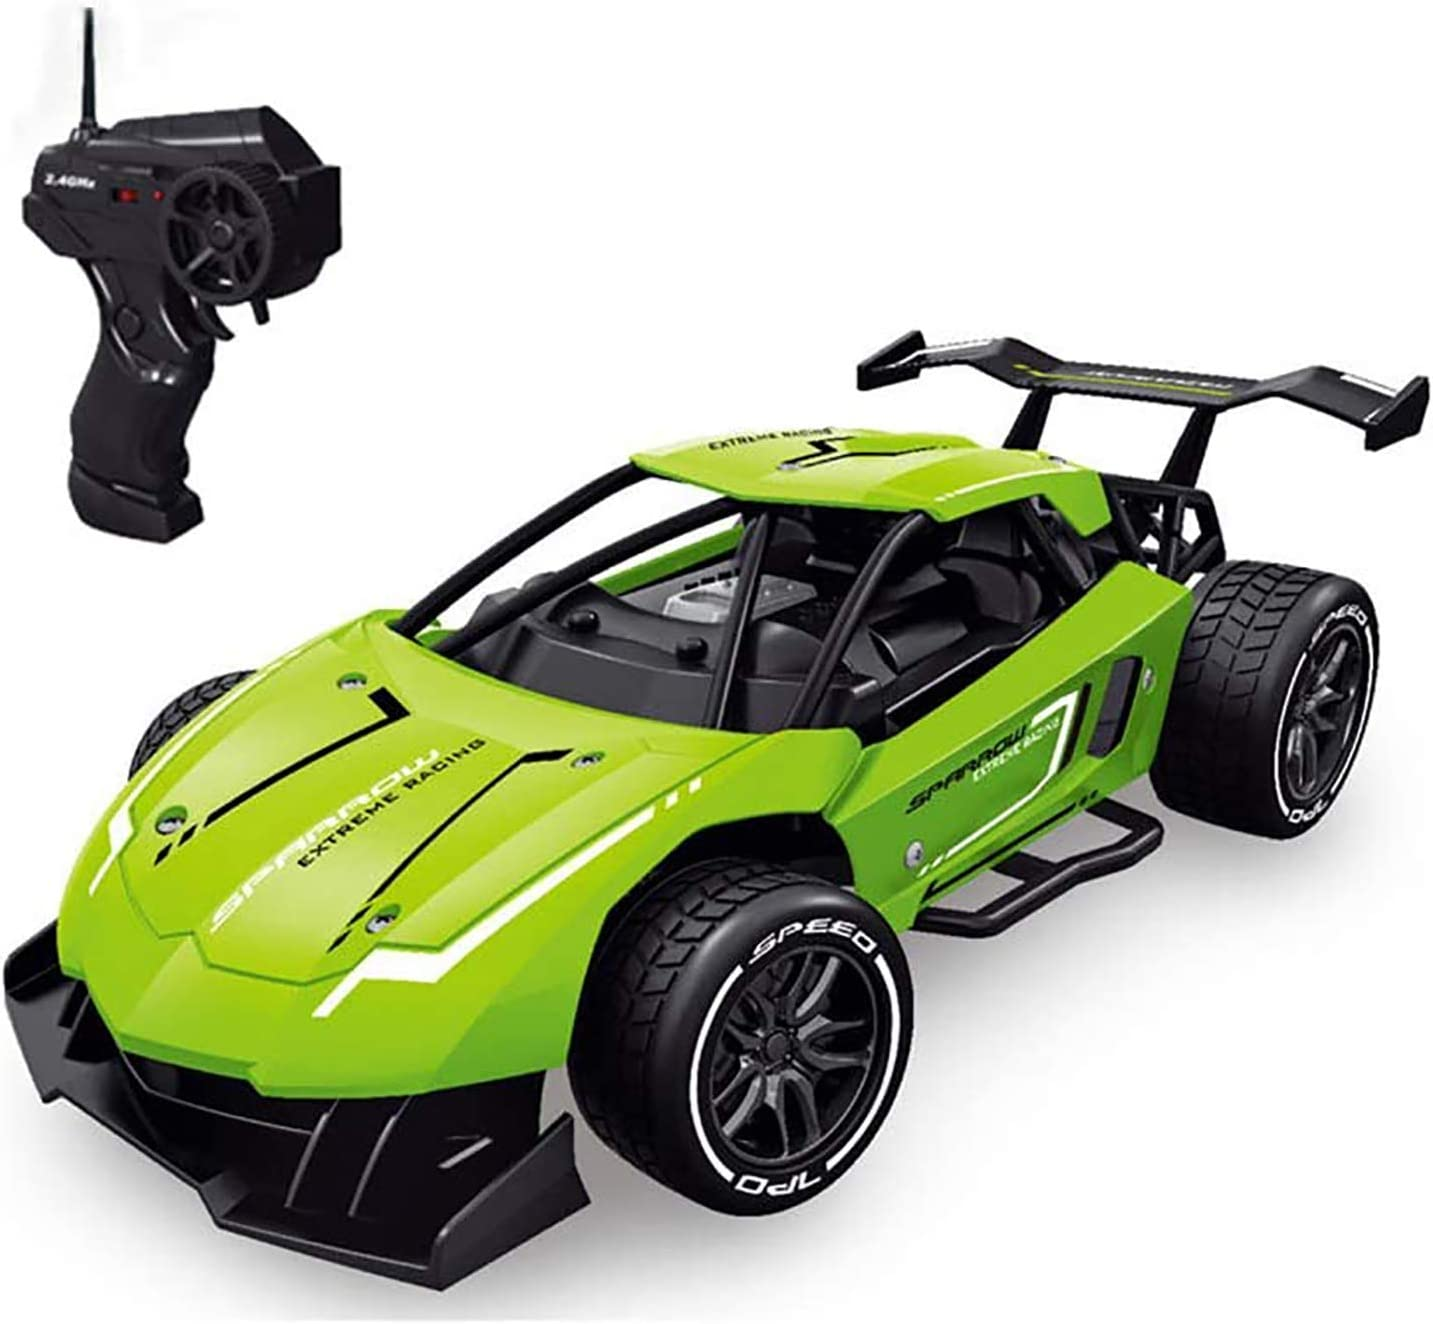 rechargeable remote control car online -